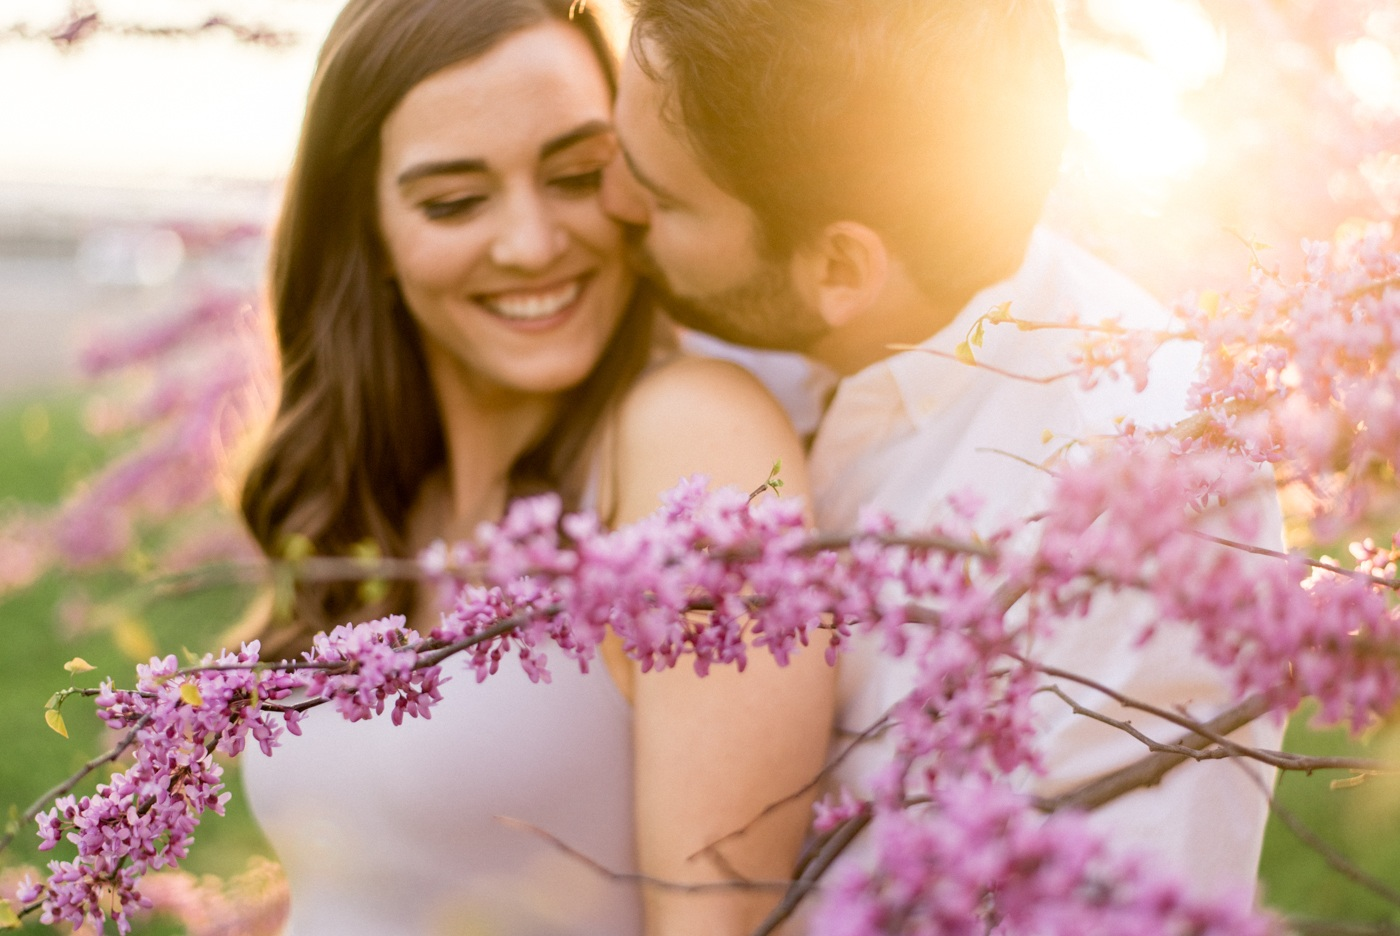 Chris & Heather's Engagement Session in Vineland Ontario with Lilacs and Cherry Blossoms